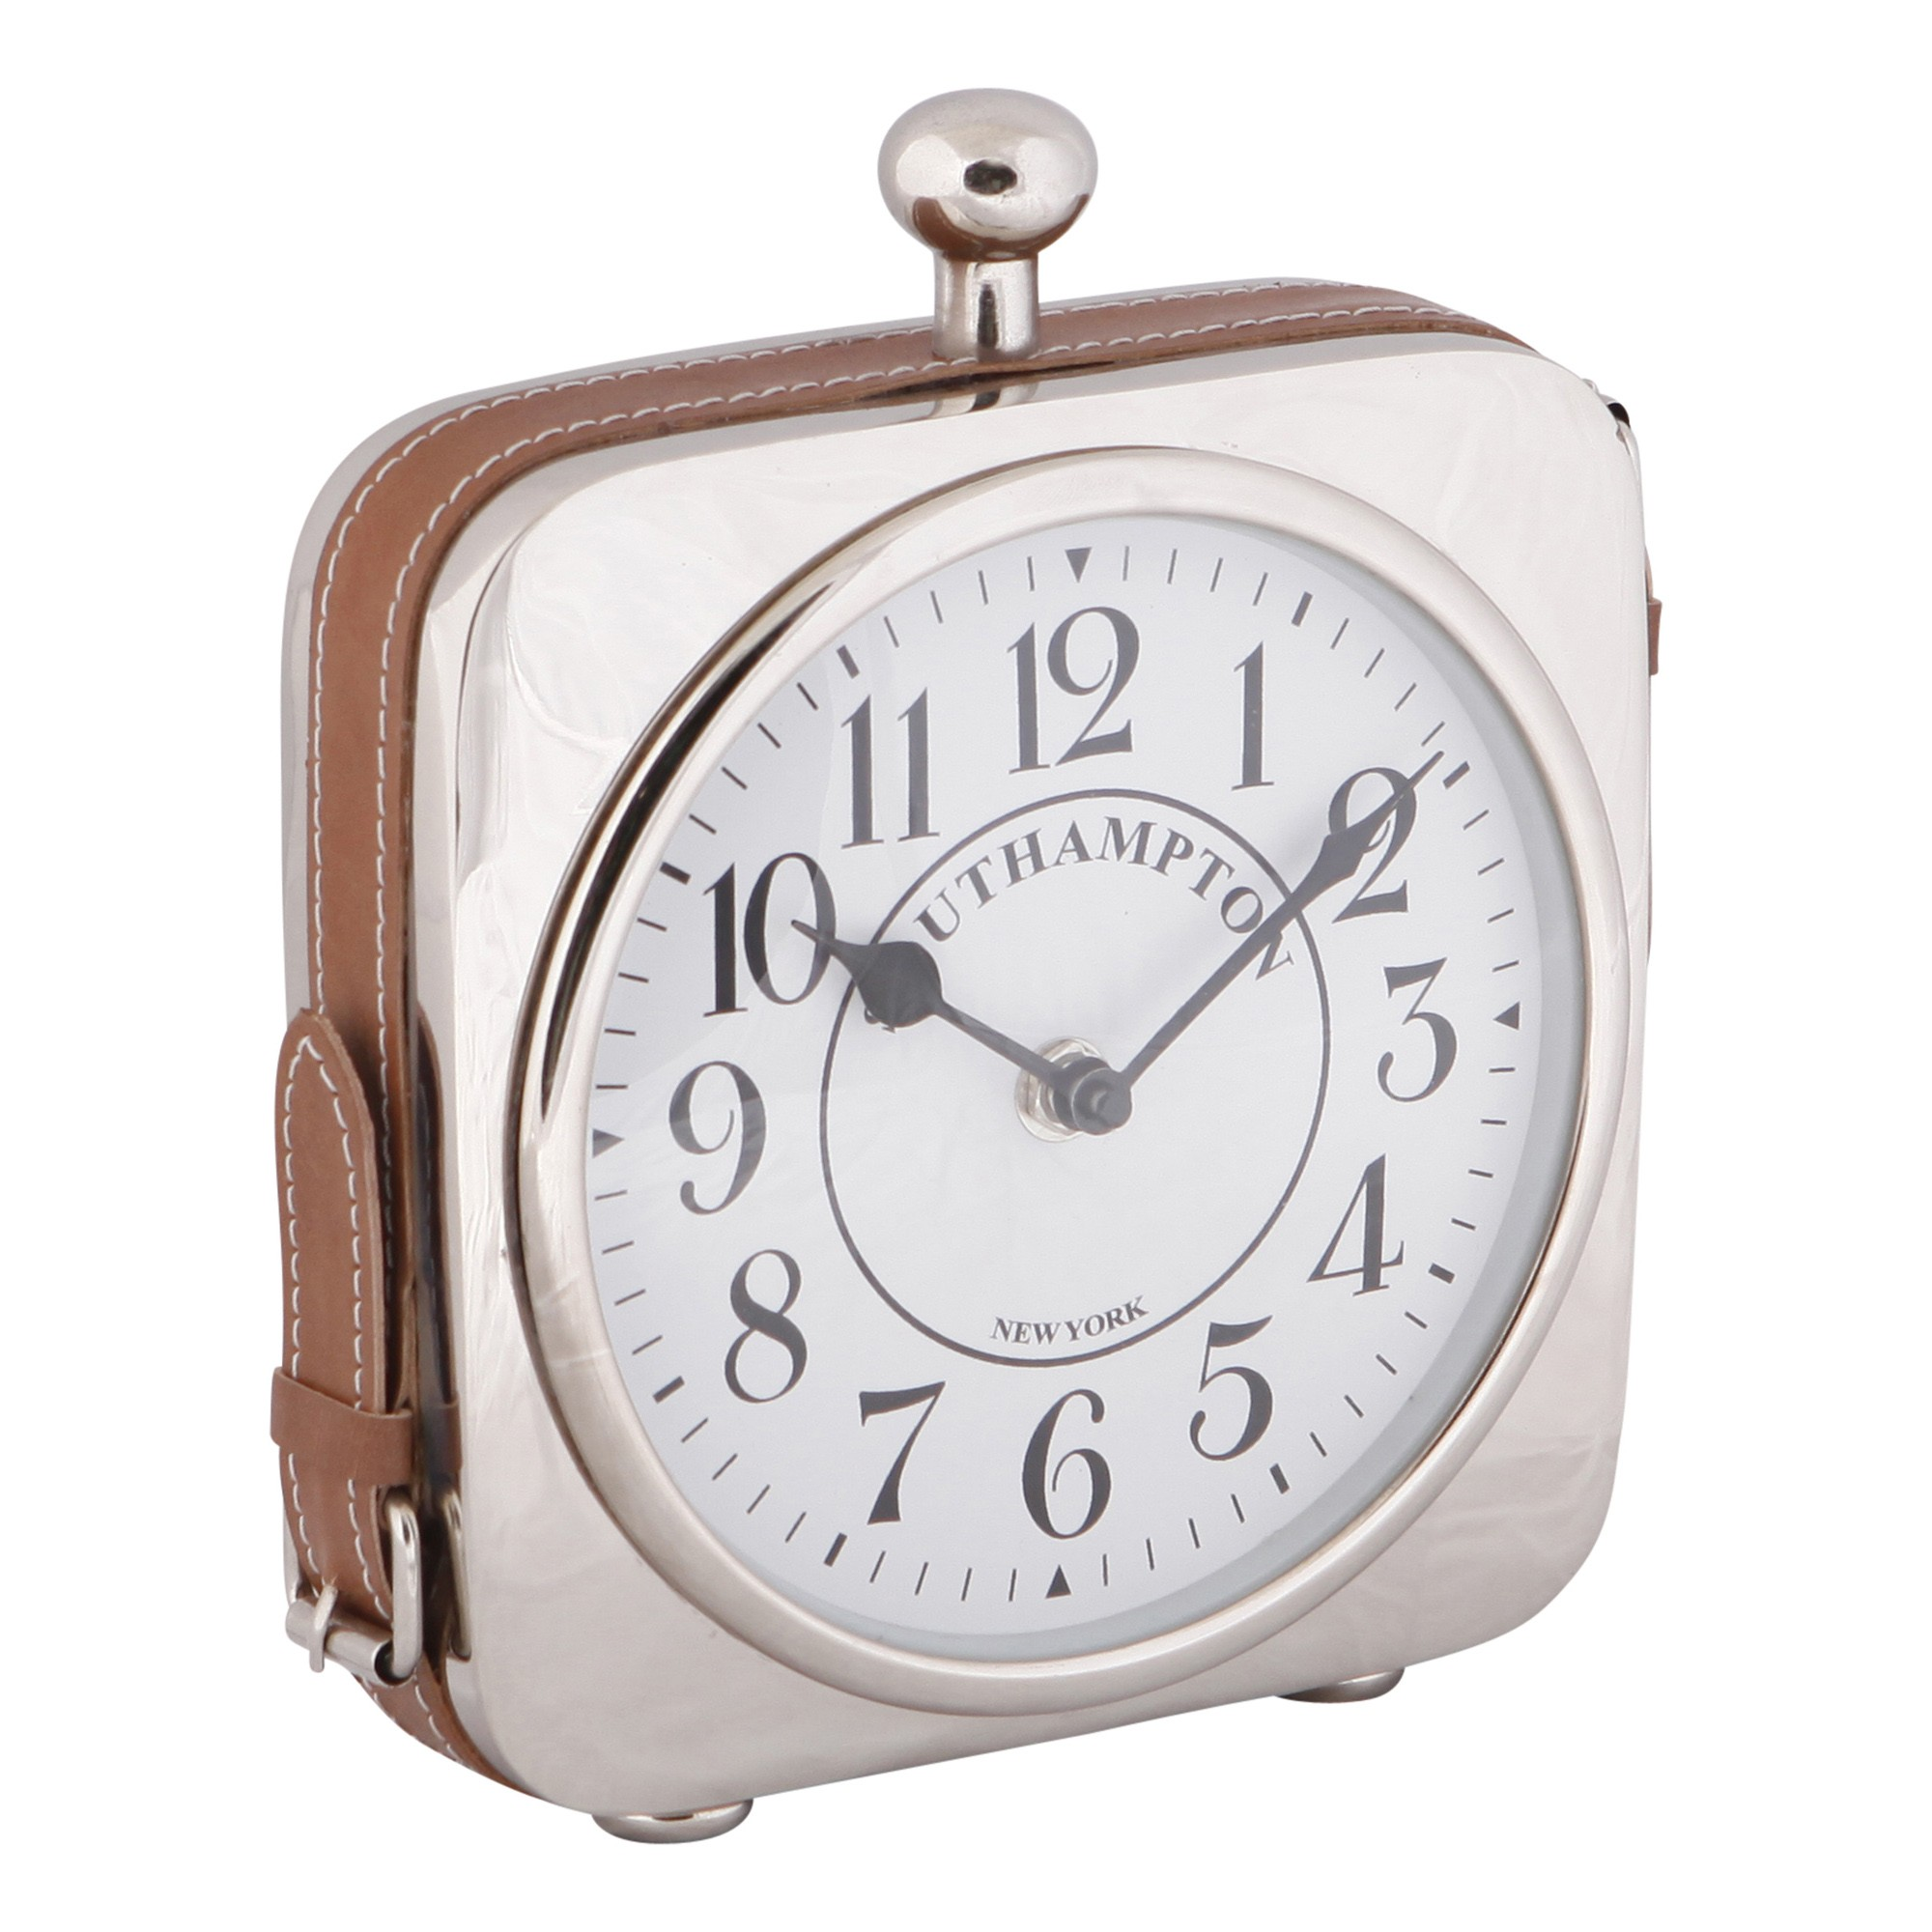 Harvey Metal & Leather Desk Clock